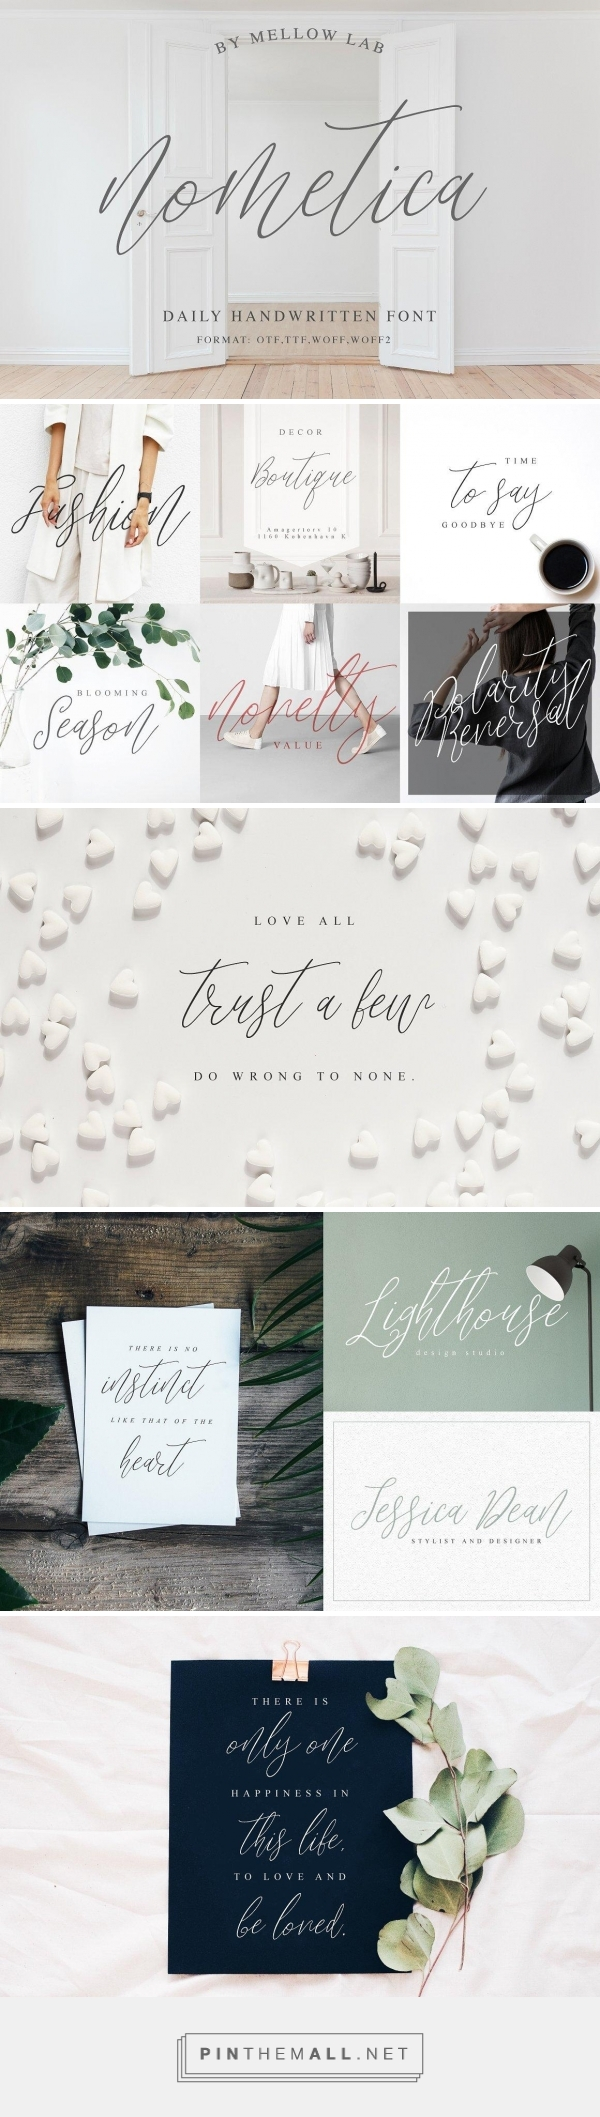 cursive fonts for wedding cards%0A Map Usda Zones